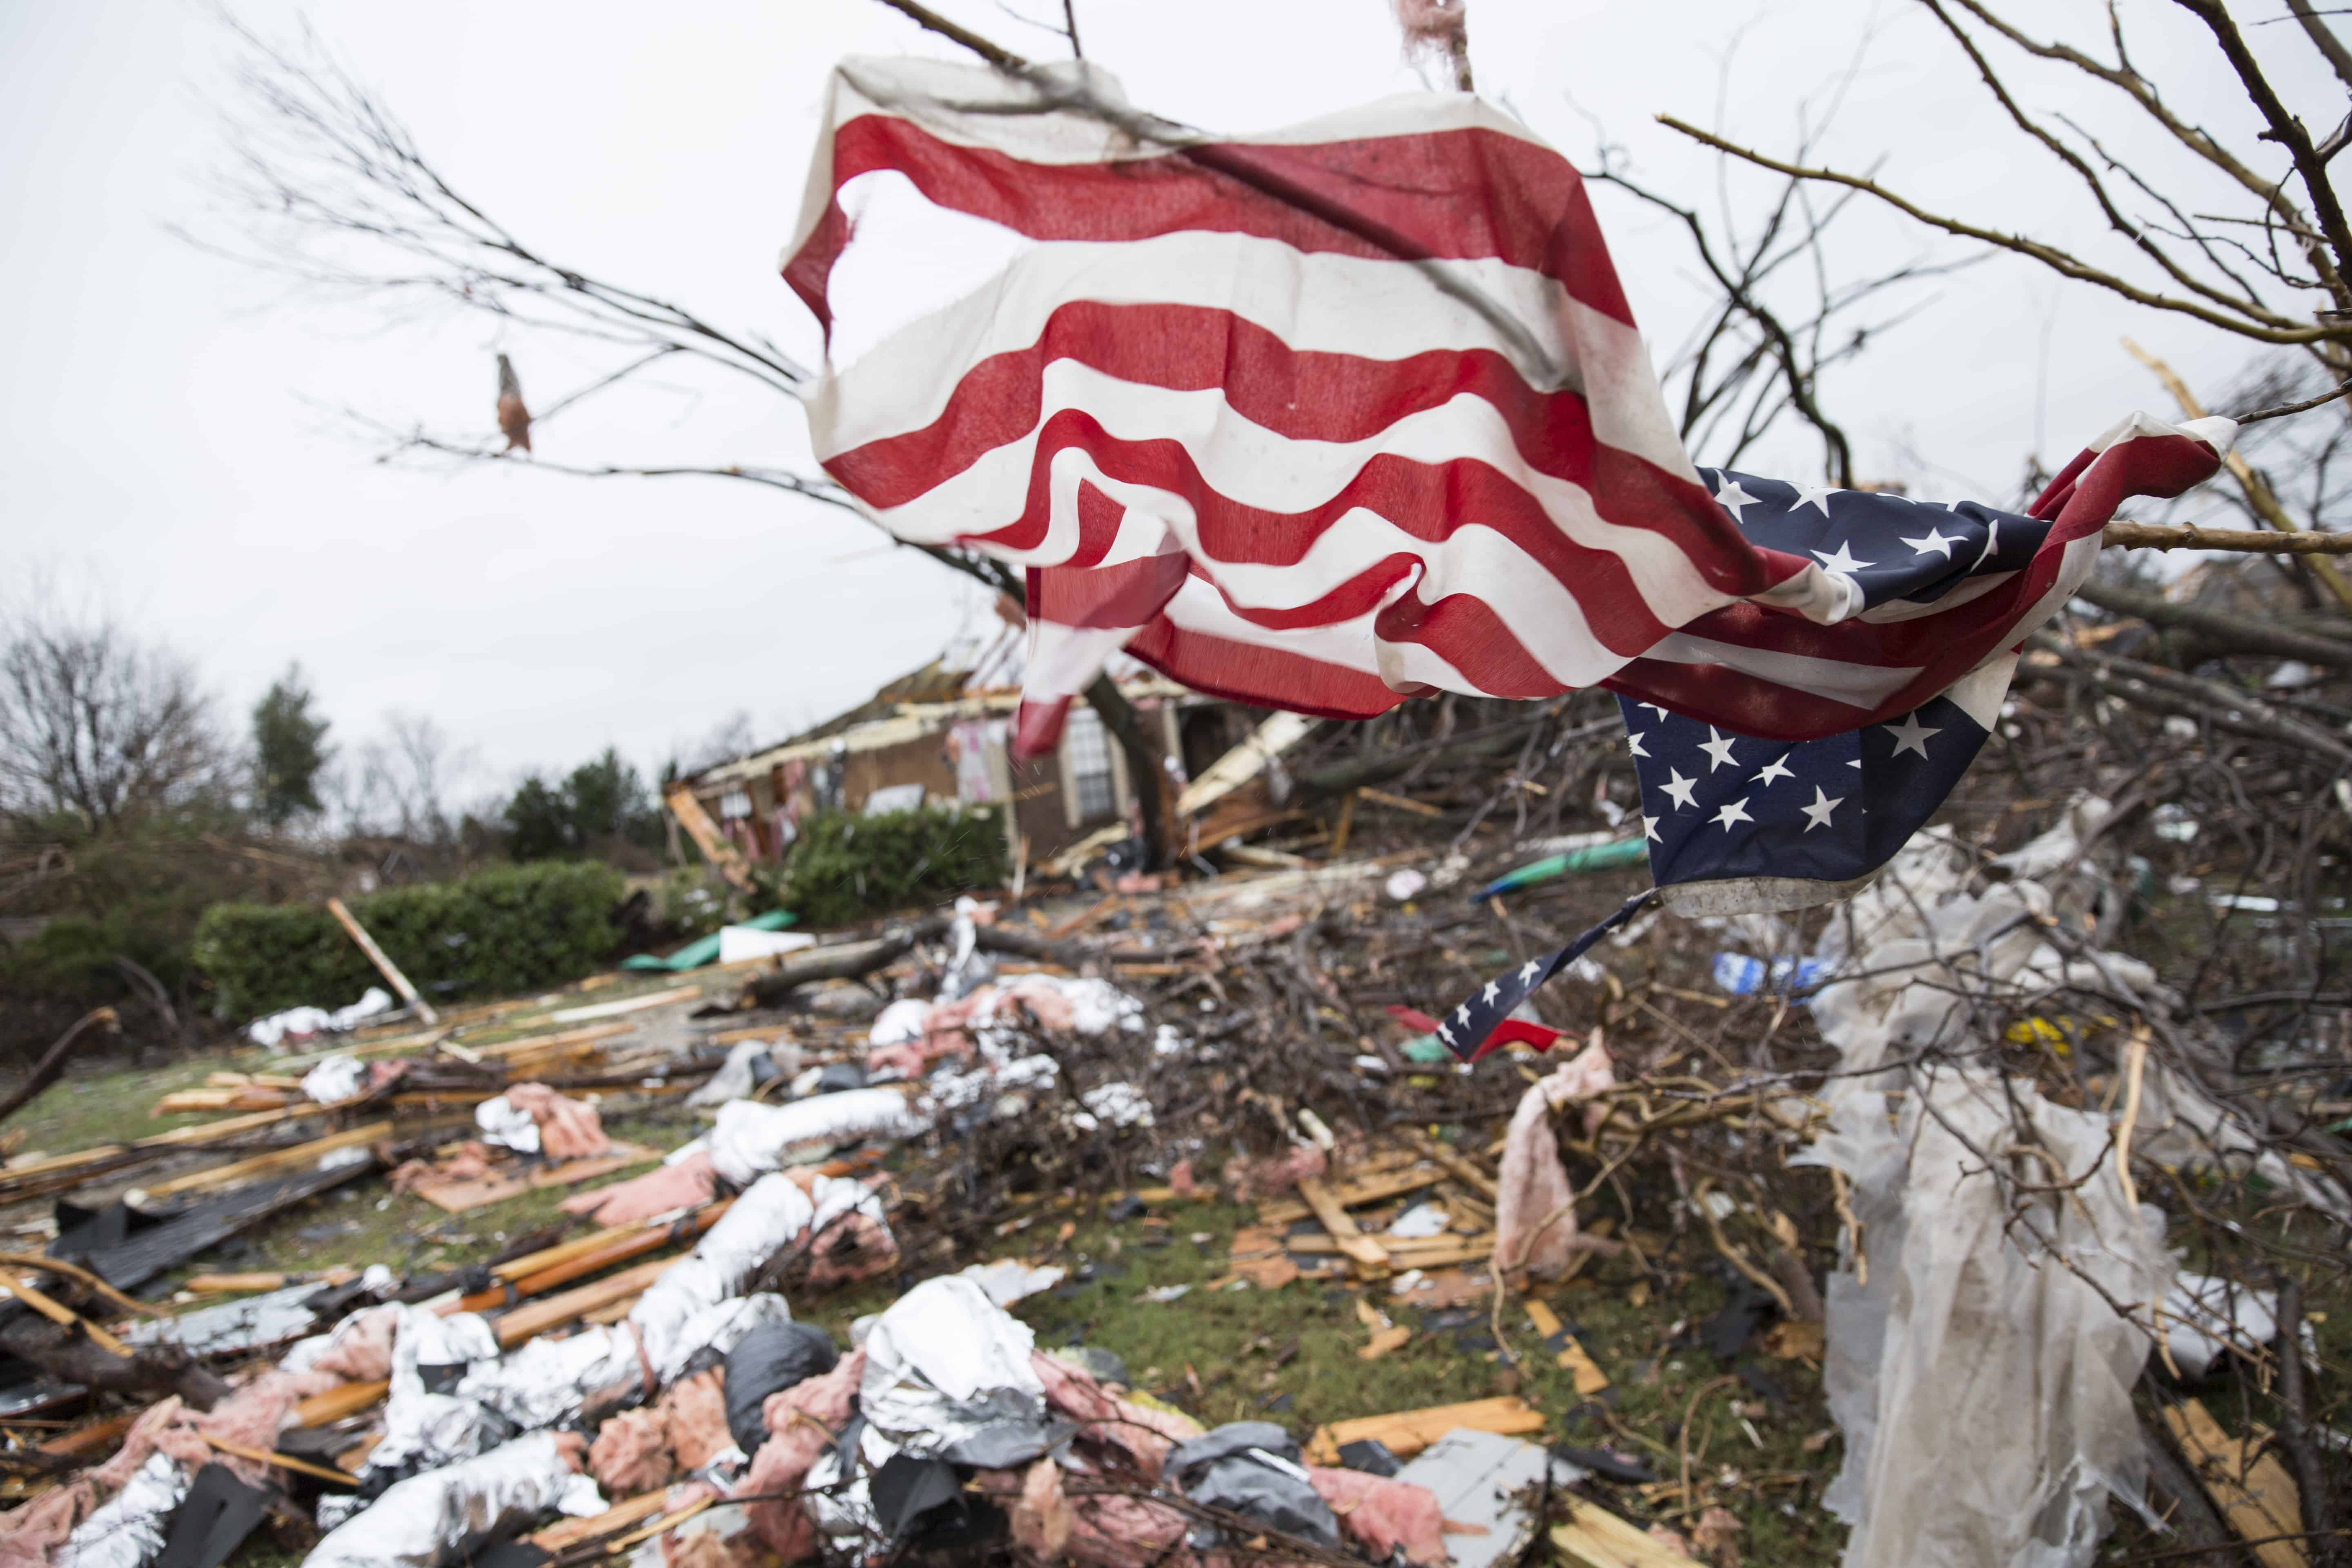 aftermath of tornadoes in Texas 2015